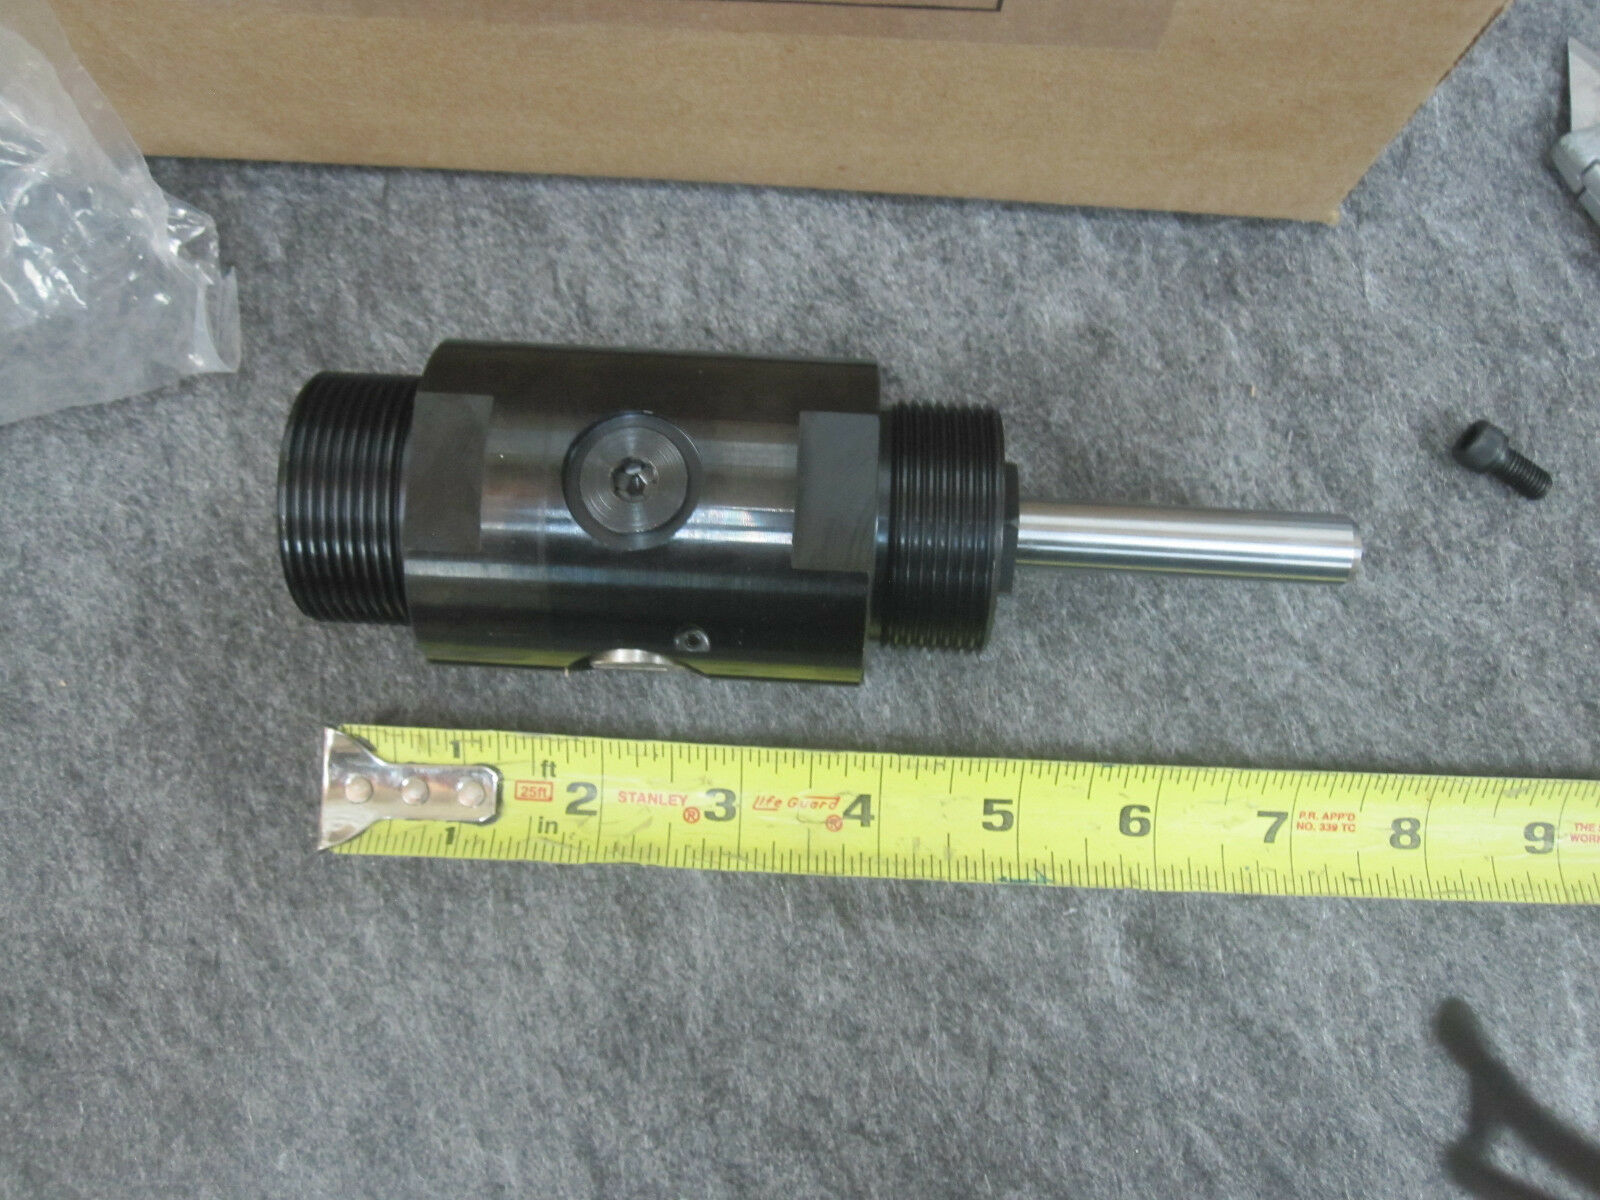 "ENIDINE SP25230 ITT LR0EMXT 3/4"" x 2"" RCM HYDRAULIC SHOCK ASORBER GROUND"